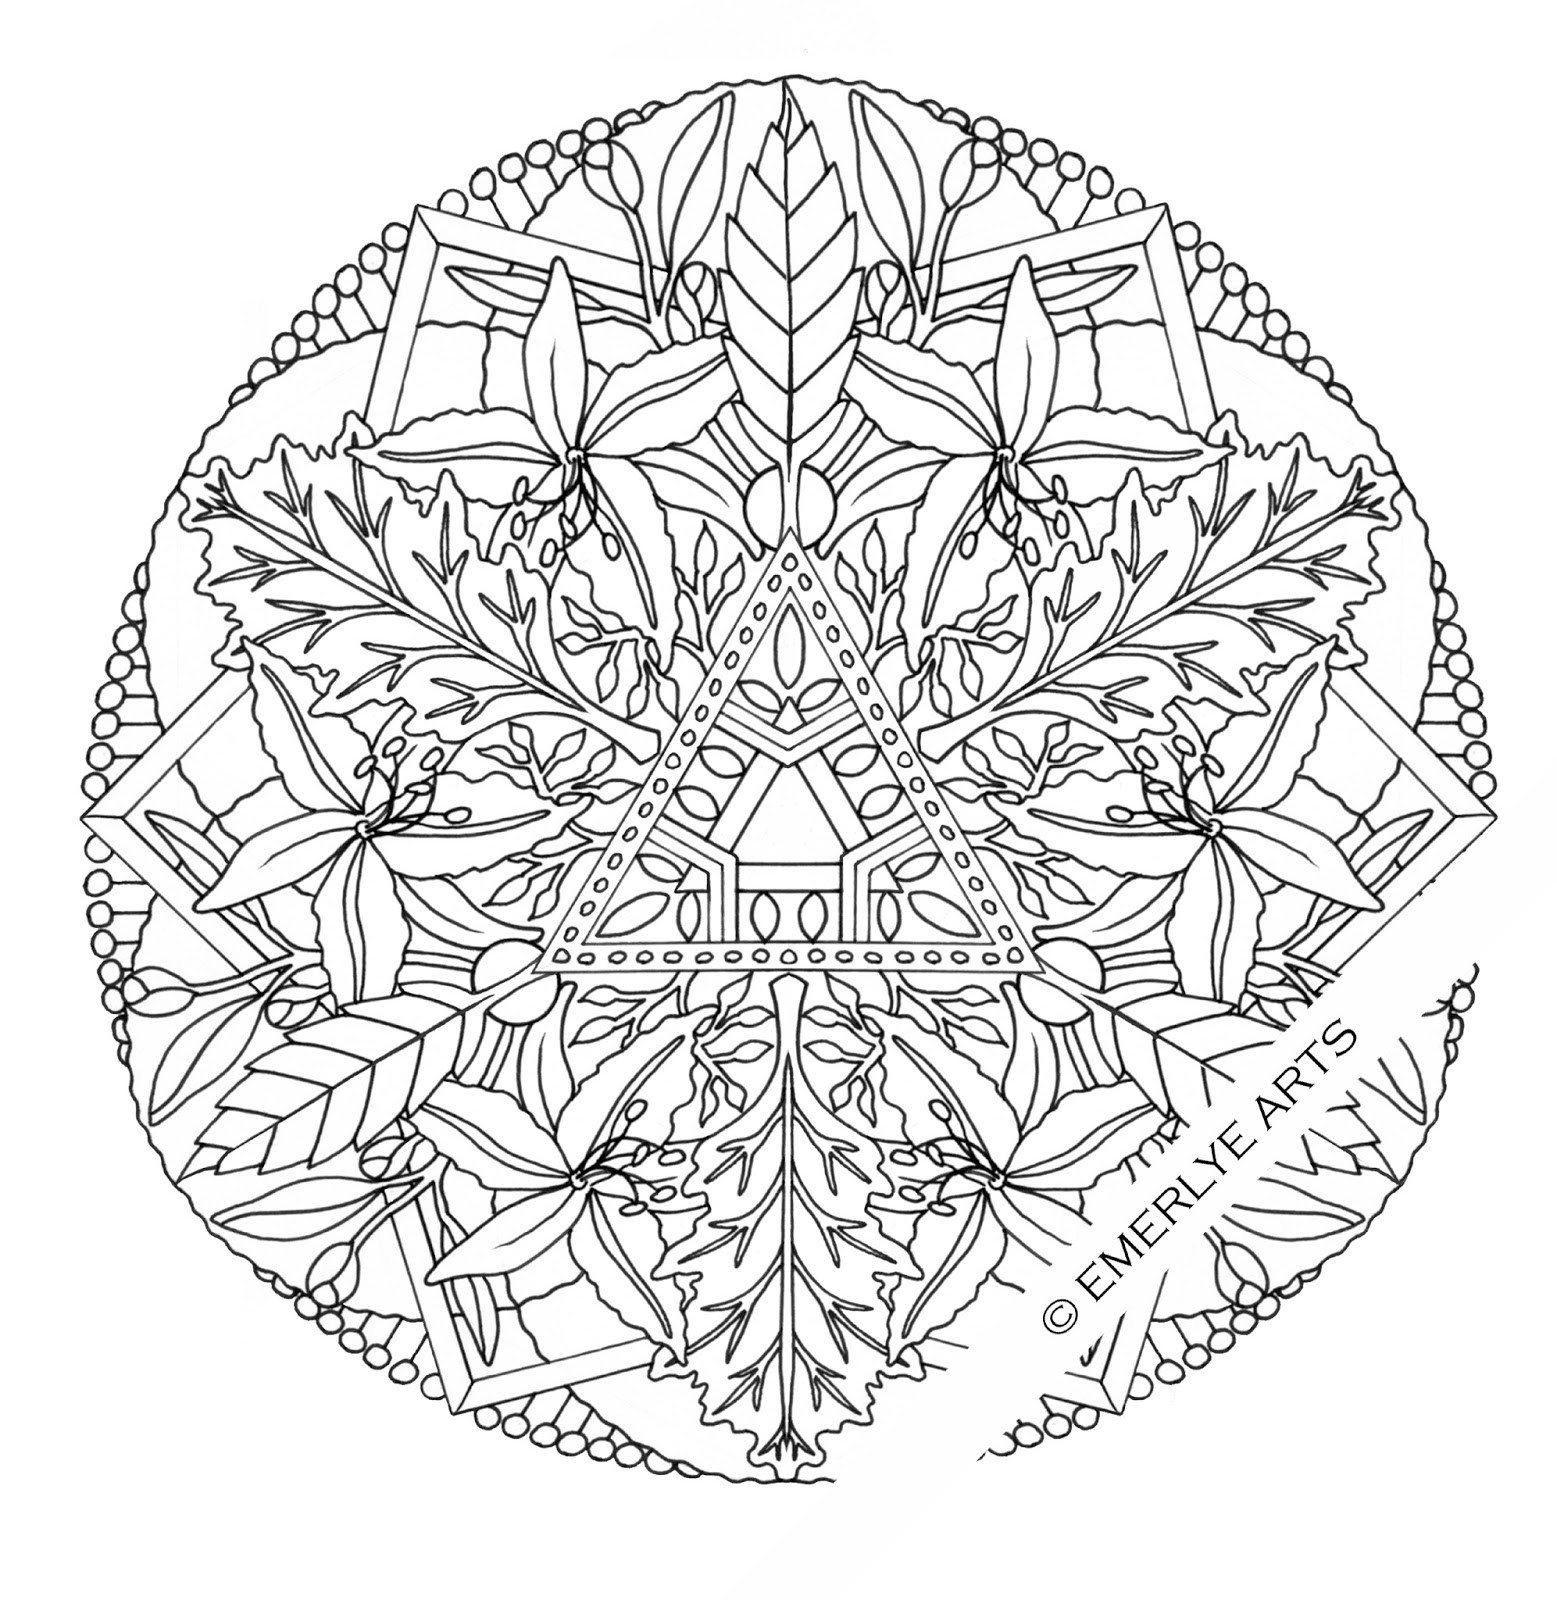 Best ideas about Coloring Pages For Adults Only . Save or Pin Animal Coloring Pages for Adults Bestofcoloring Now.